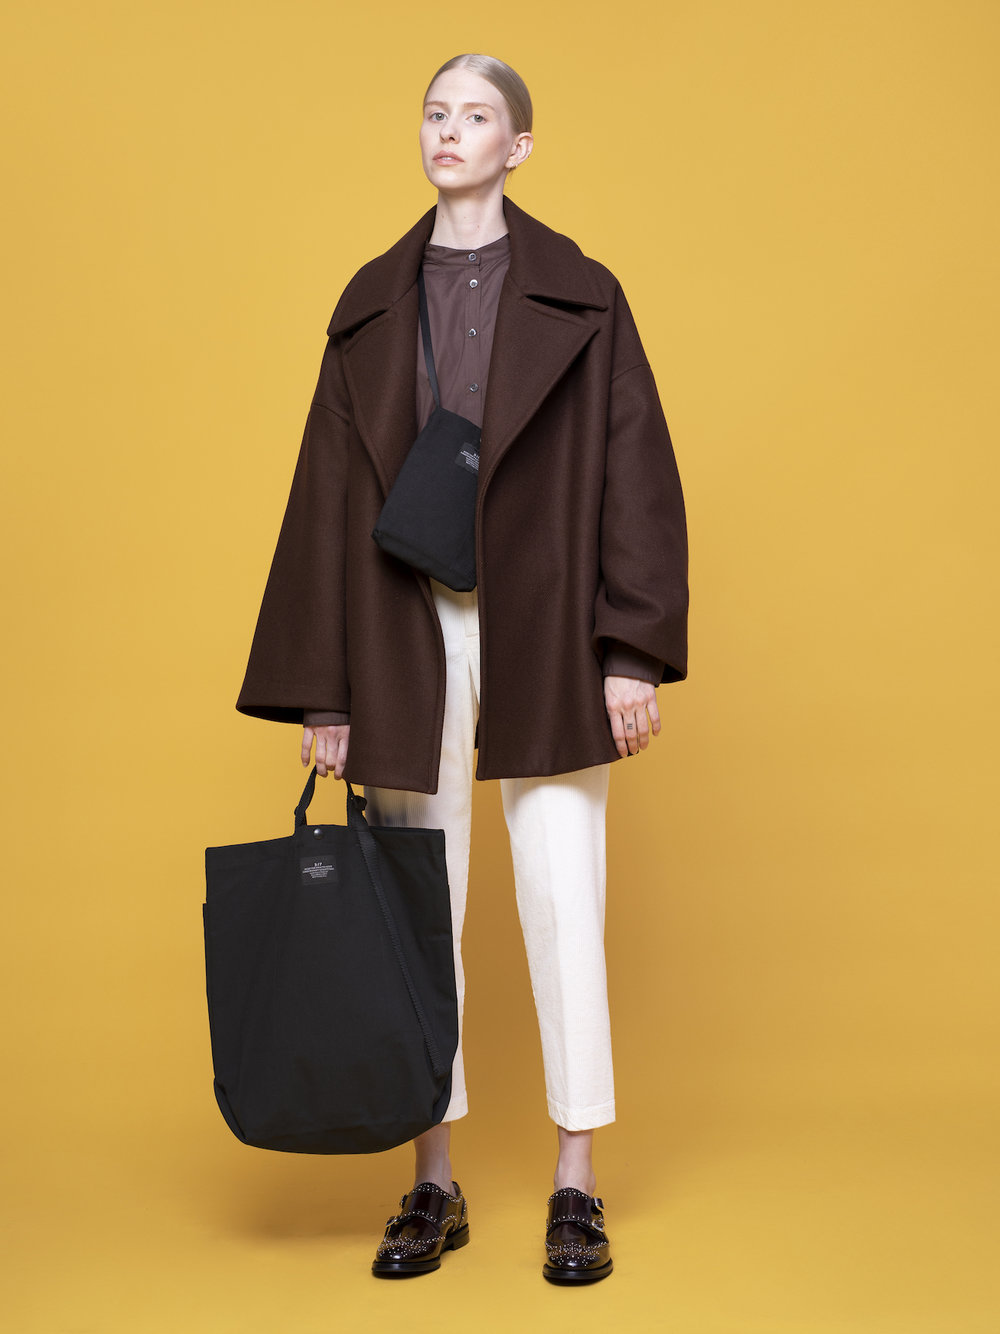 Carry-all Tote & Passport Shoulder